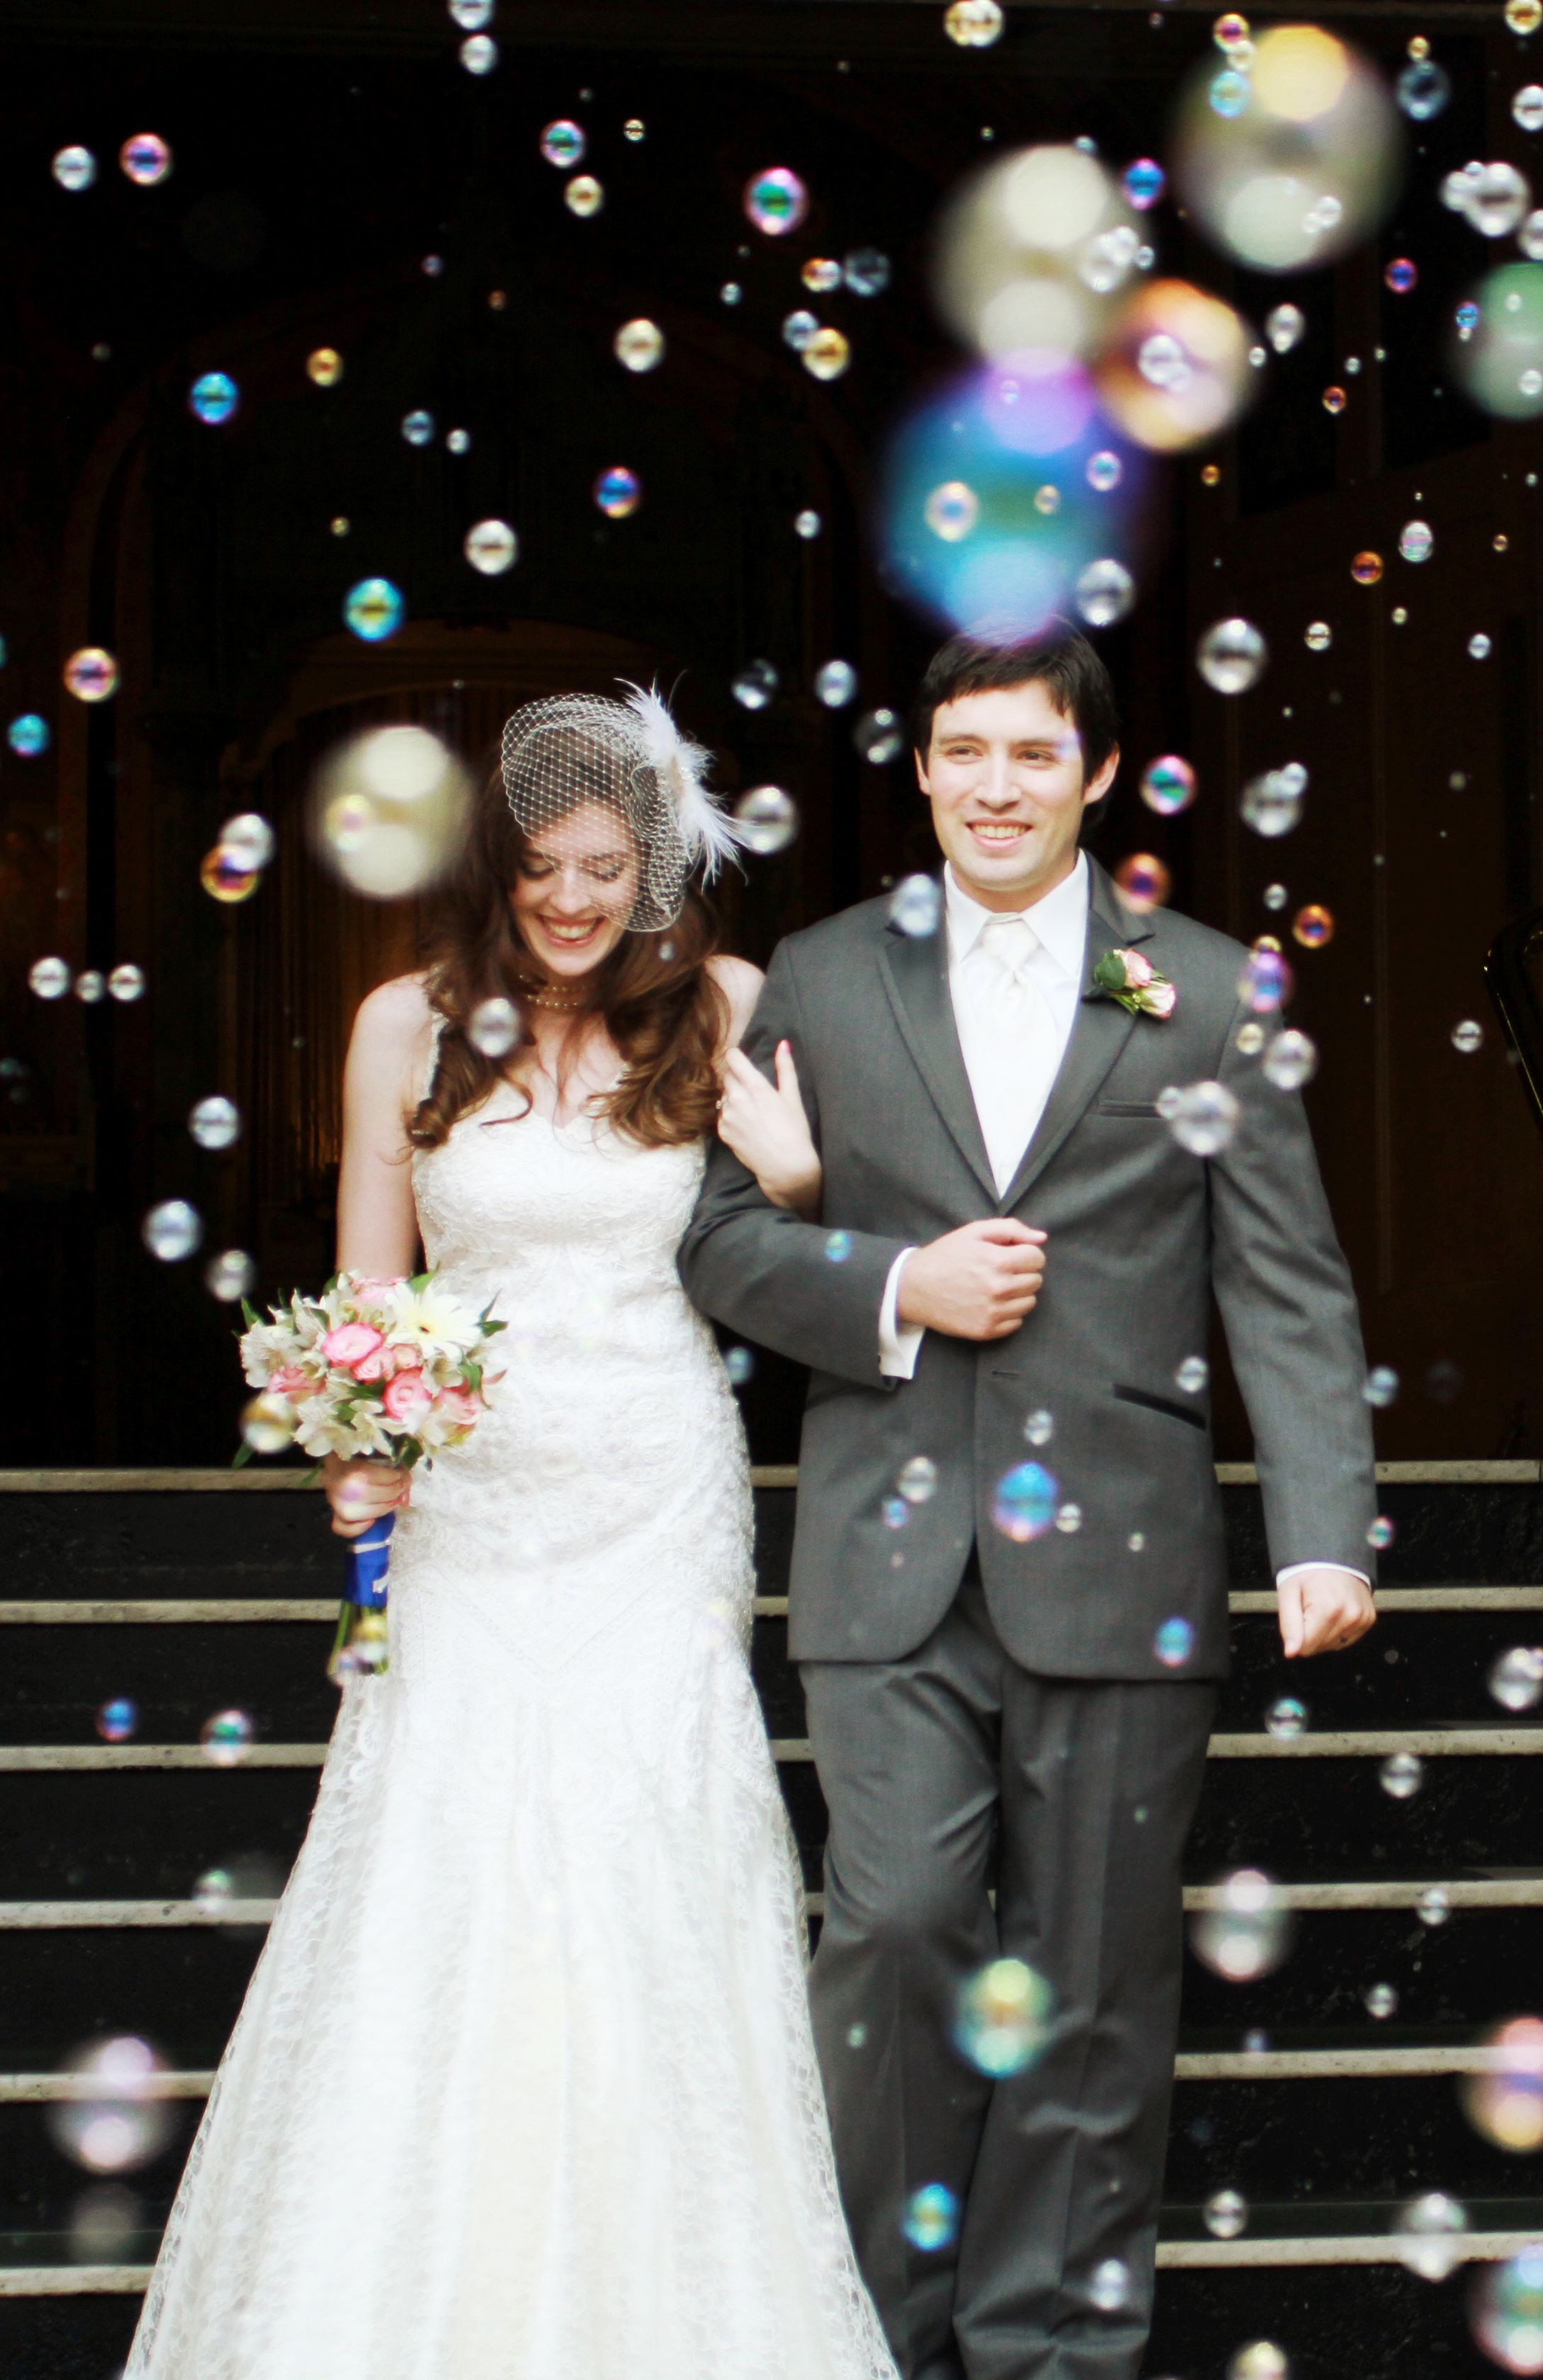 Bubbles, since it happening and all o) Wedding photos